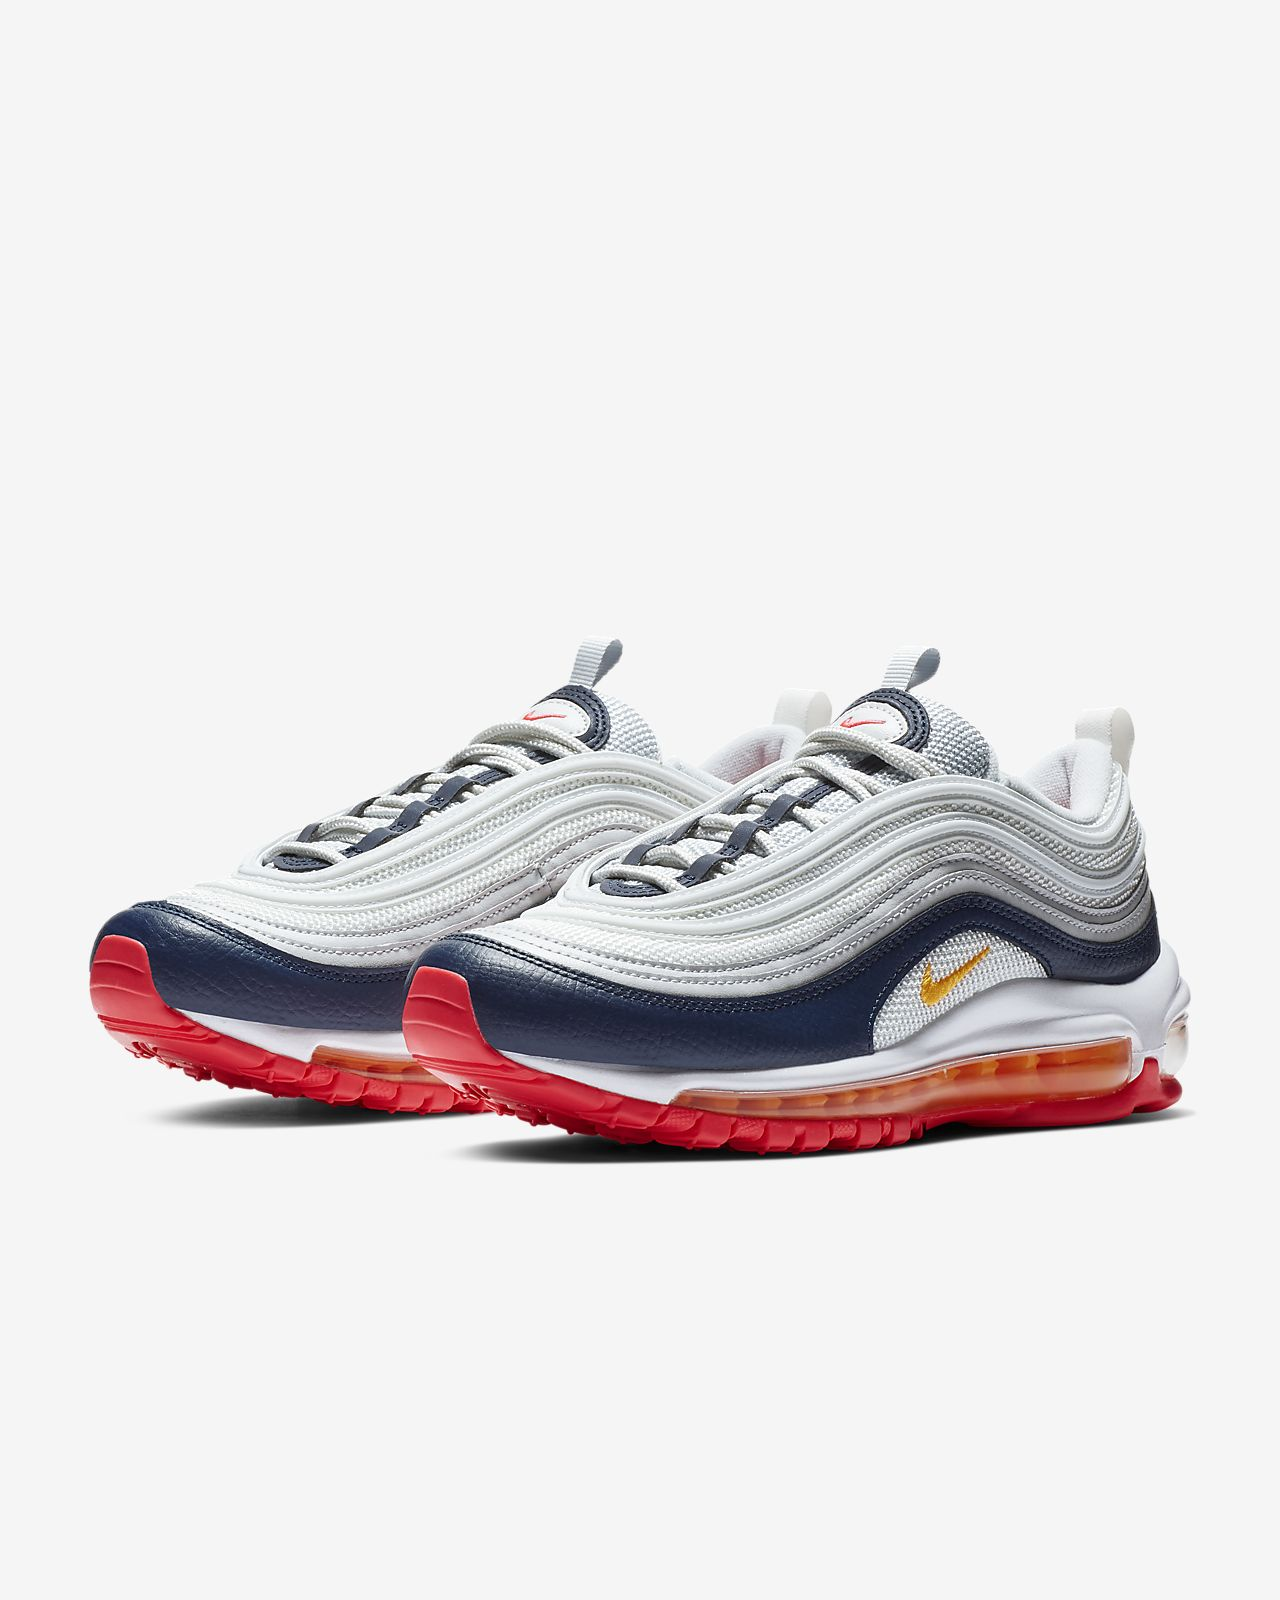 brand new b60f1 1a73f ... Nike Air Max 97 Premium Womens Shoe